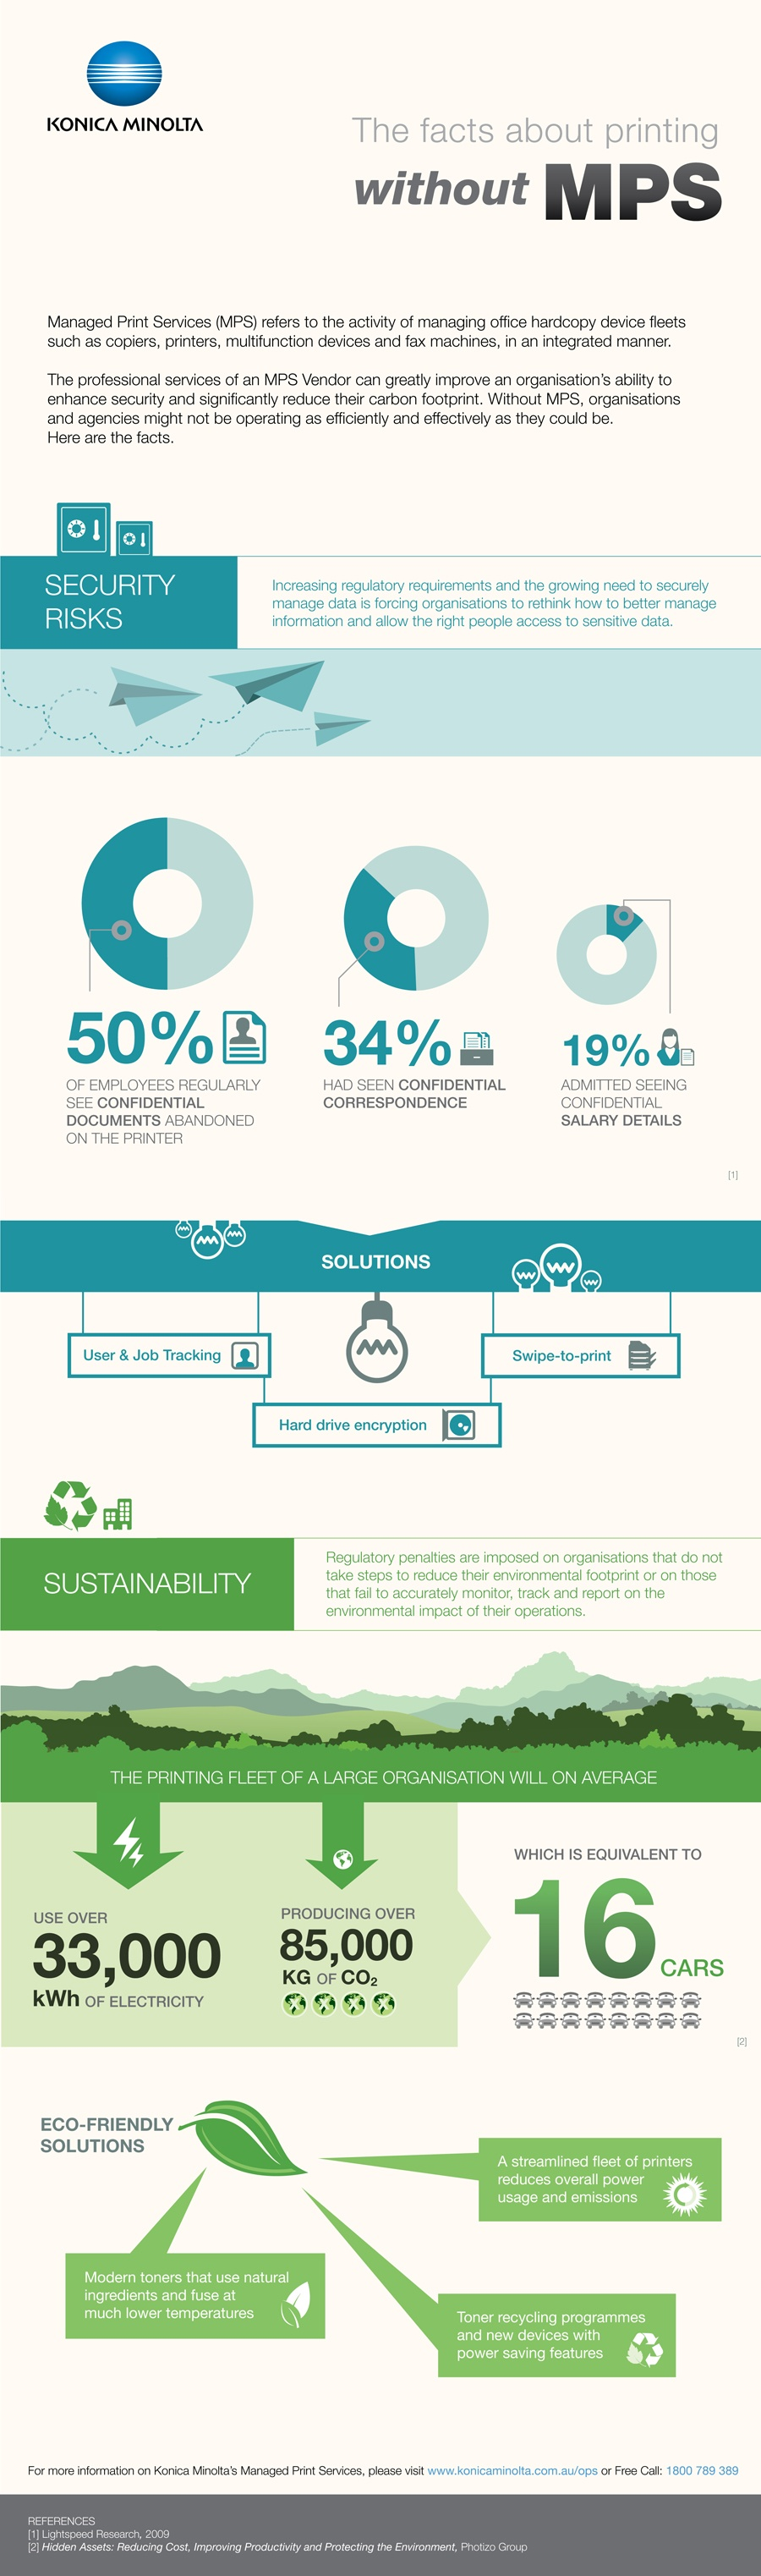 Konica_Miniolta_MPS_Benefits_Security_Sustainability_Infographic_2